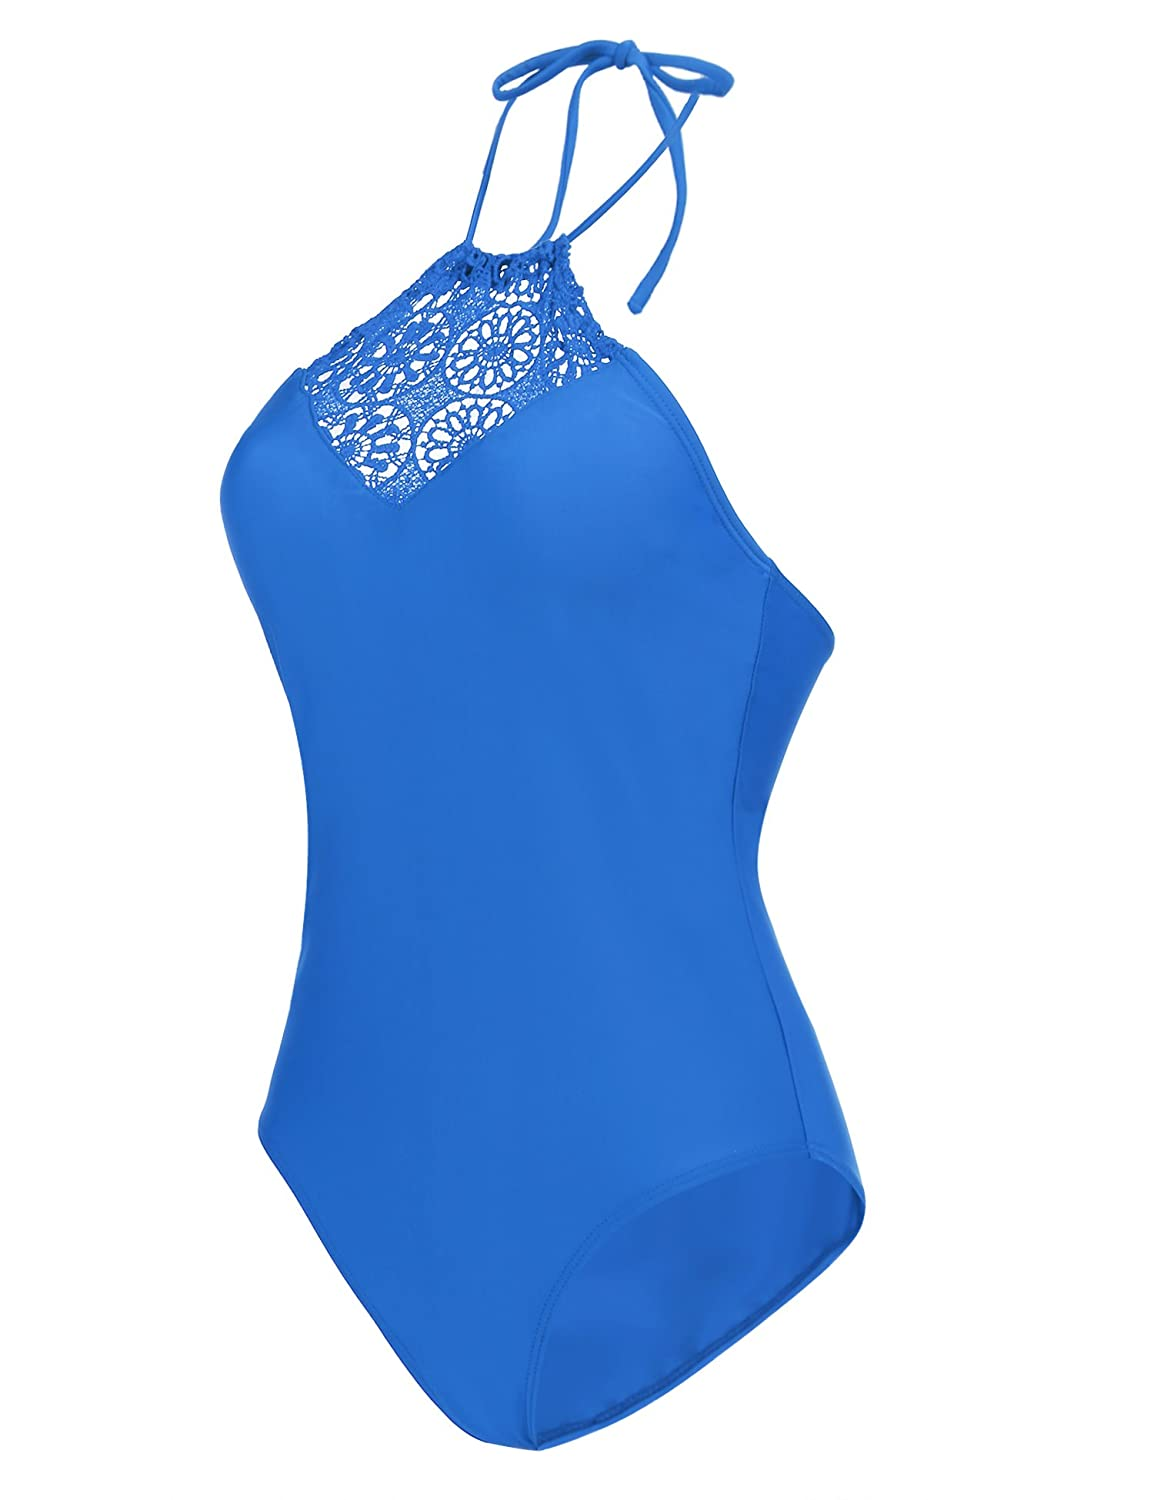 9919fc867f799 82% Polyamide and 18% Elastane, women's one piece swimsuits. Lace up and  high cut hollow in both sides fashion monikini for all body shapes